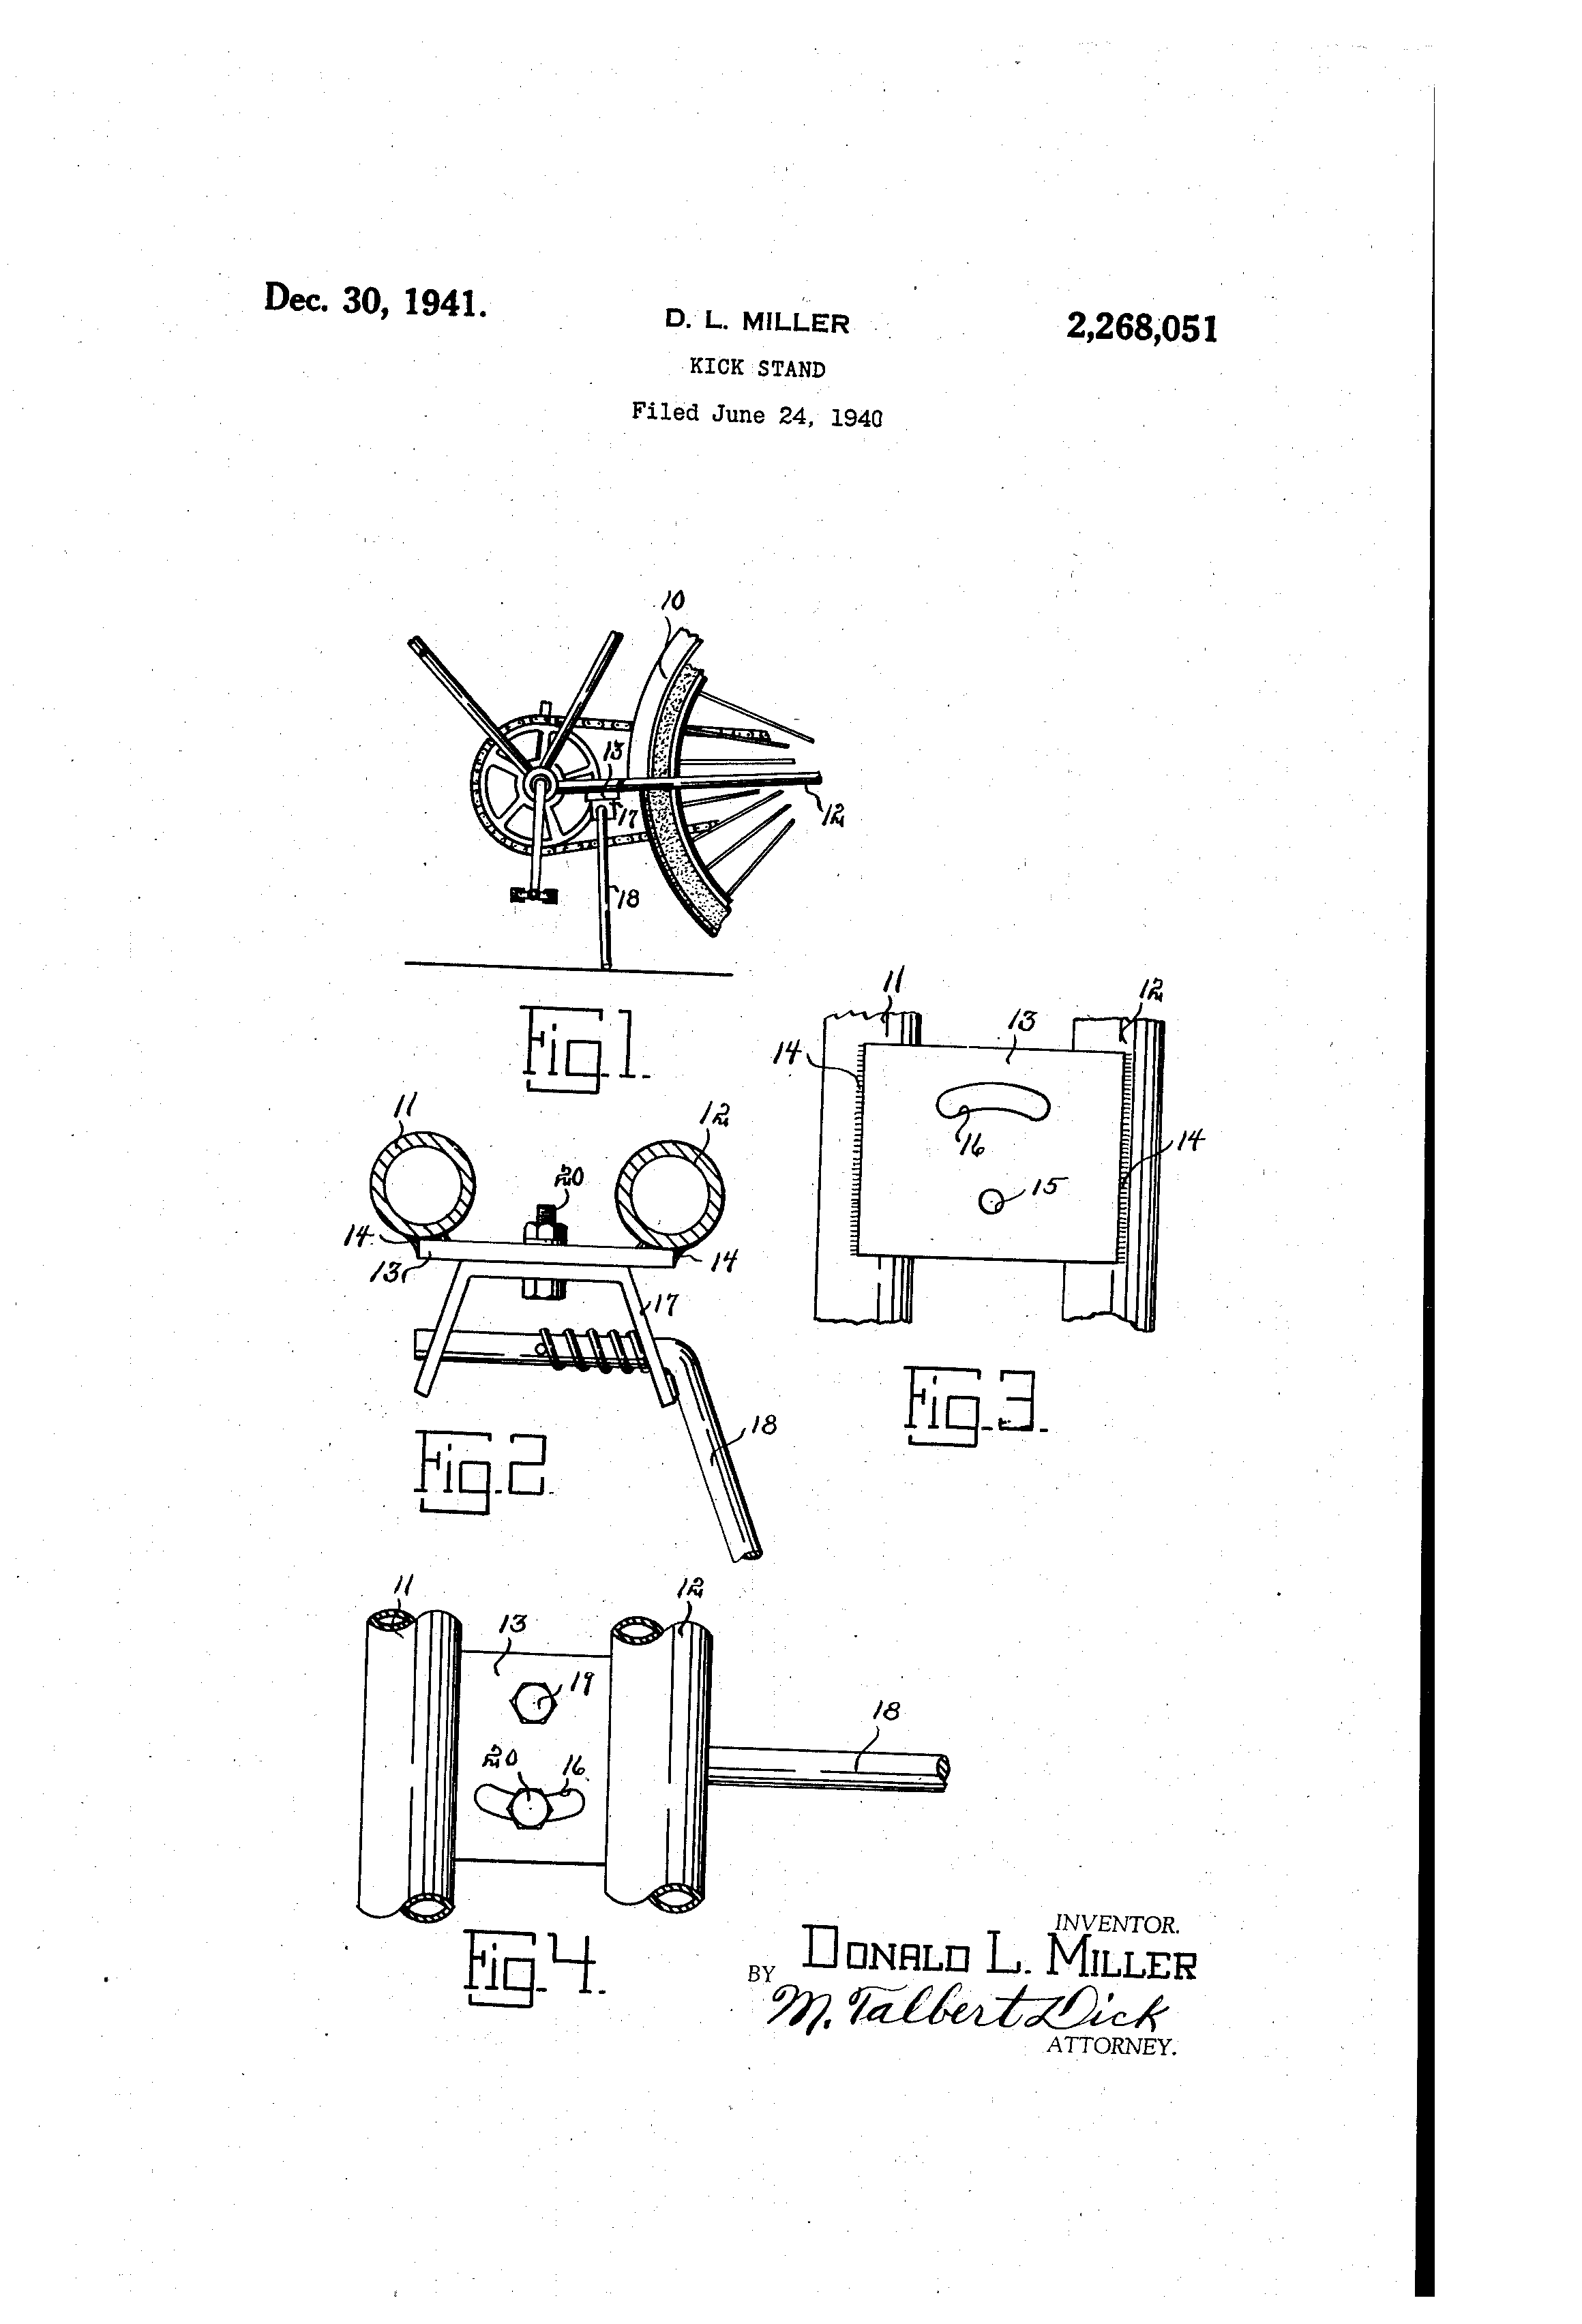 Miller Products Company kickstand patent